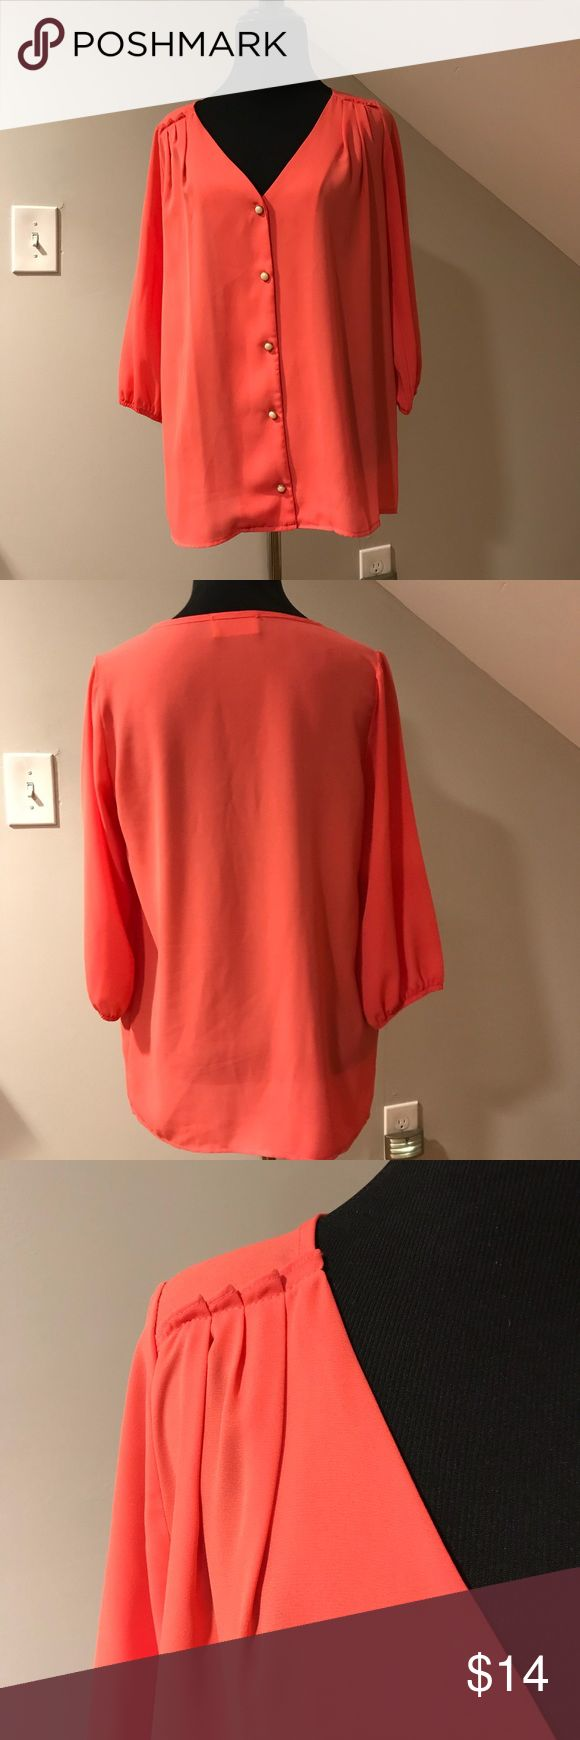 Coral blouse by Everly for ModCloth Gorgeous v-neck coral blouse from Everly bought at ModCloth! Beautiful detail at shoulders with lovely pearl buttons. Sleeves are 3/4 length. Everly Tops Blouses